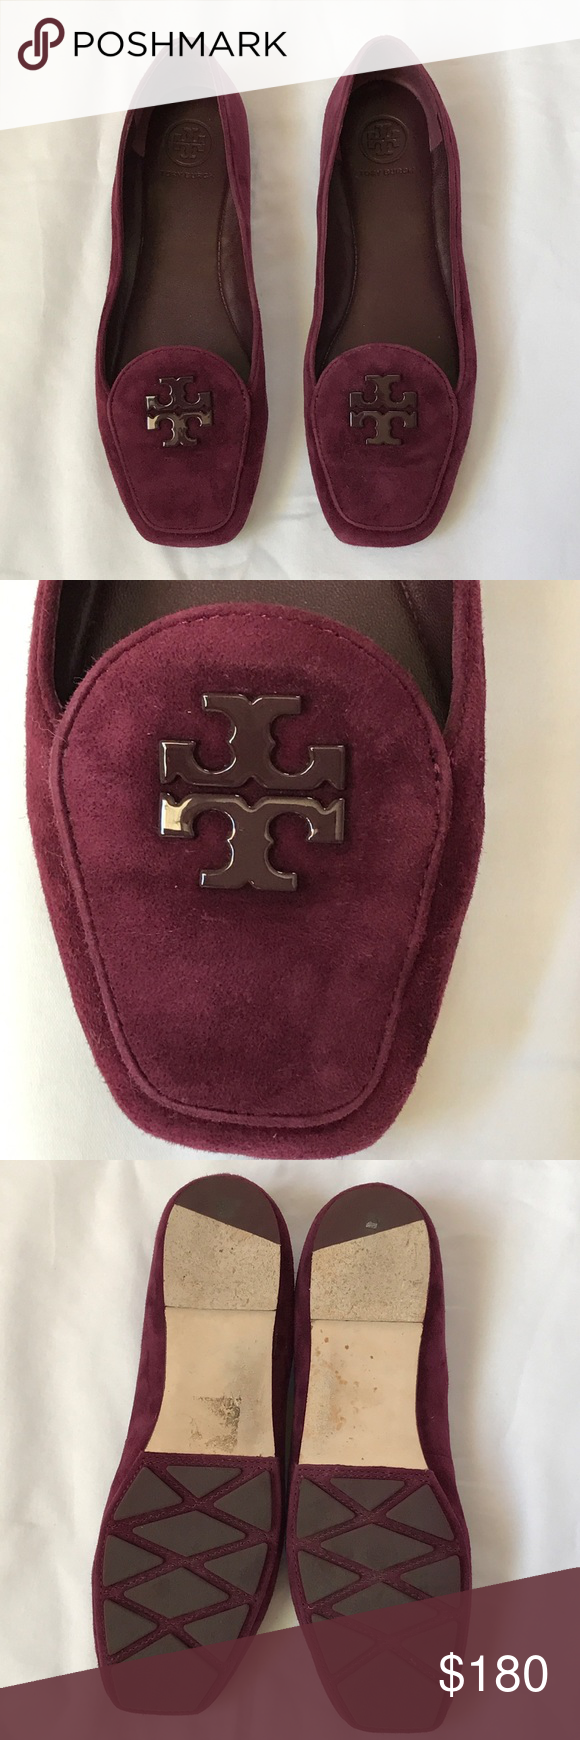 0ba7955fe5698e Tory Burch Fitz loafers Sophisticated Tory Burch kid suede loafers. Square  toed. Logo. Port color. Only worn for few hours! Practically brand new!